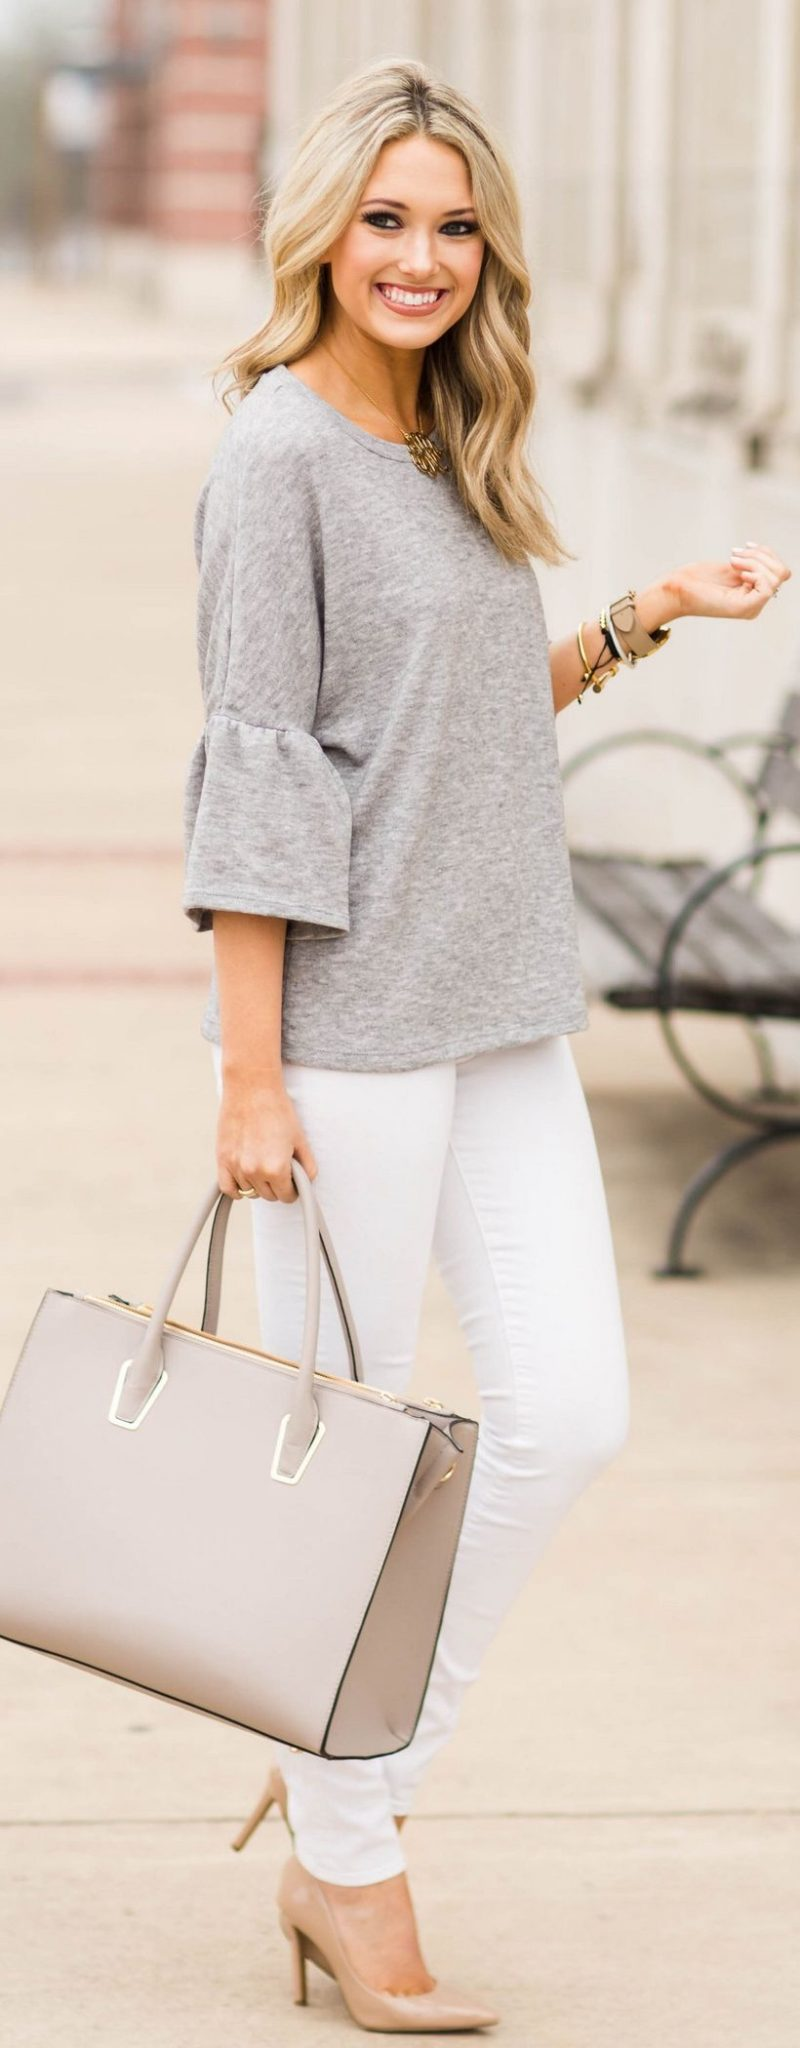 Stylish leather tote bags for work 100